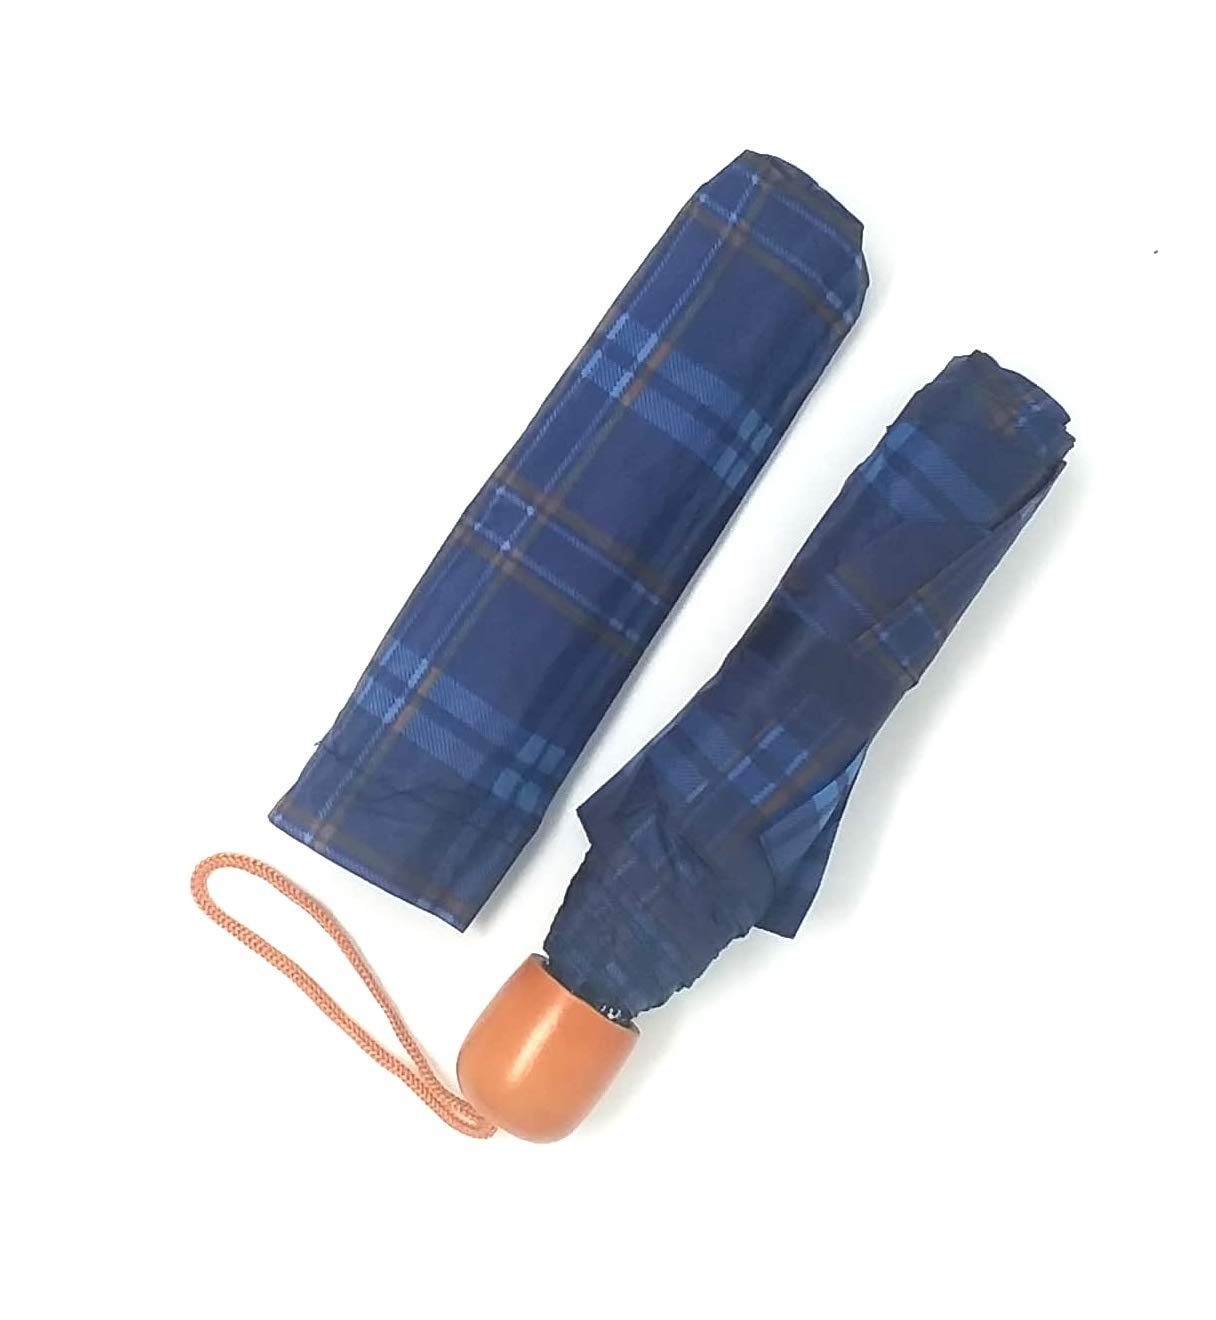 60 COMPACT Plaid Golf Umbrellas With Wooden Handle, Carry Strap & Storage Sleeve - MULTIPLE COLORS WHOLESALE BULK LOT